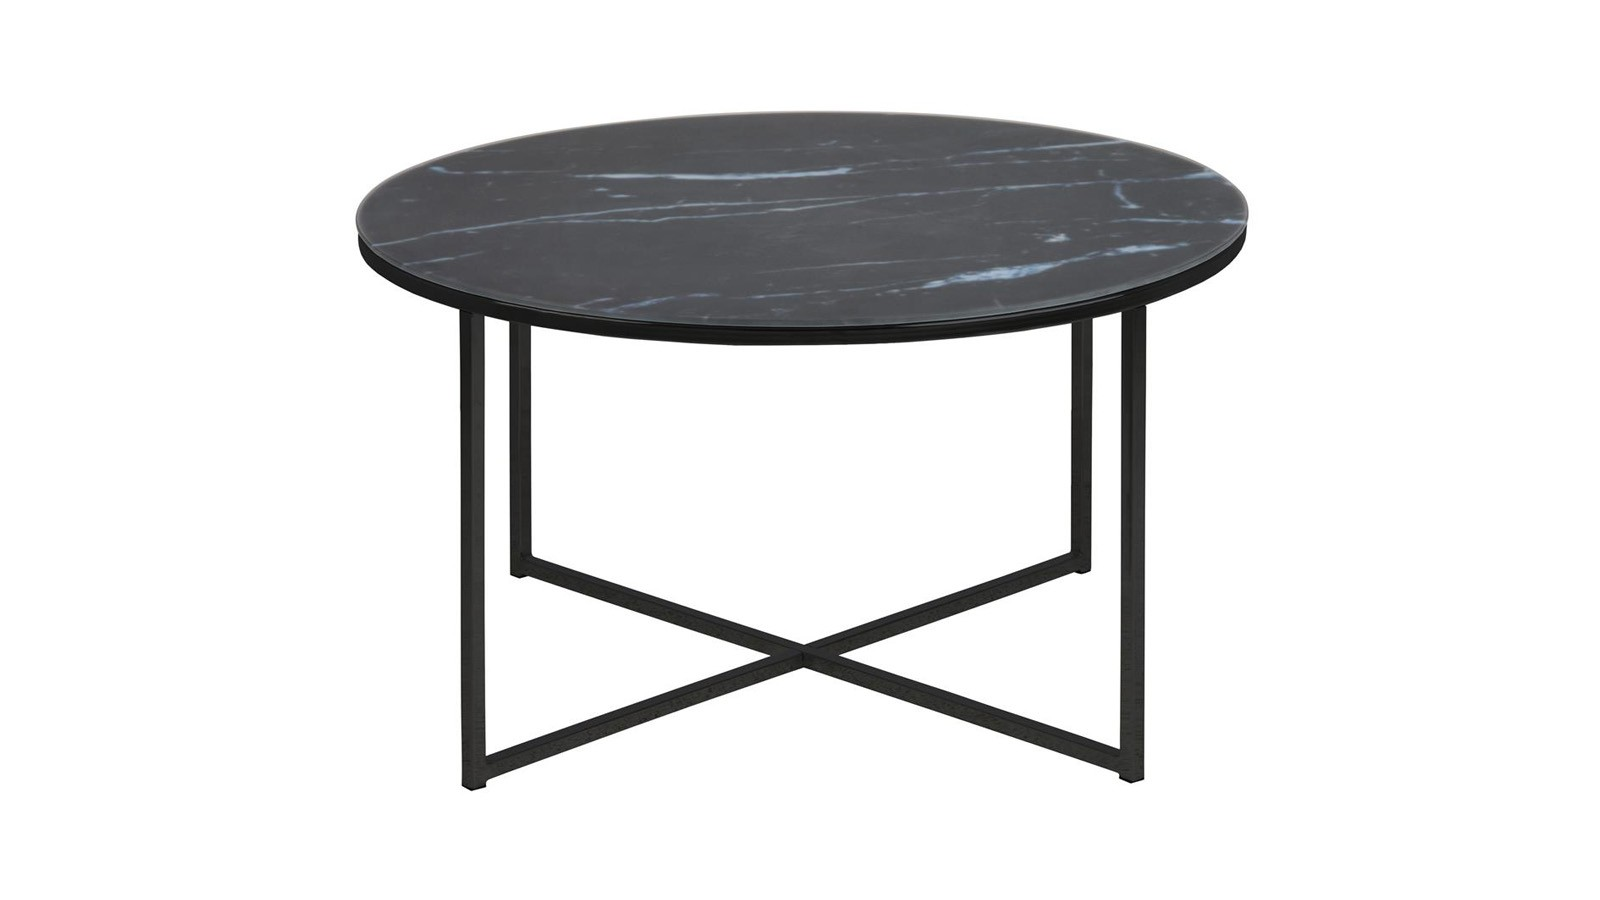 table basse ronde noir id es de d coration int rieure french decor. Black Bedroom Furniture Sets. Home Design Ideas